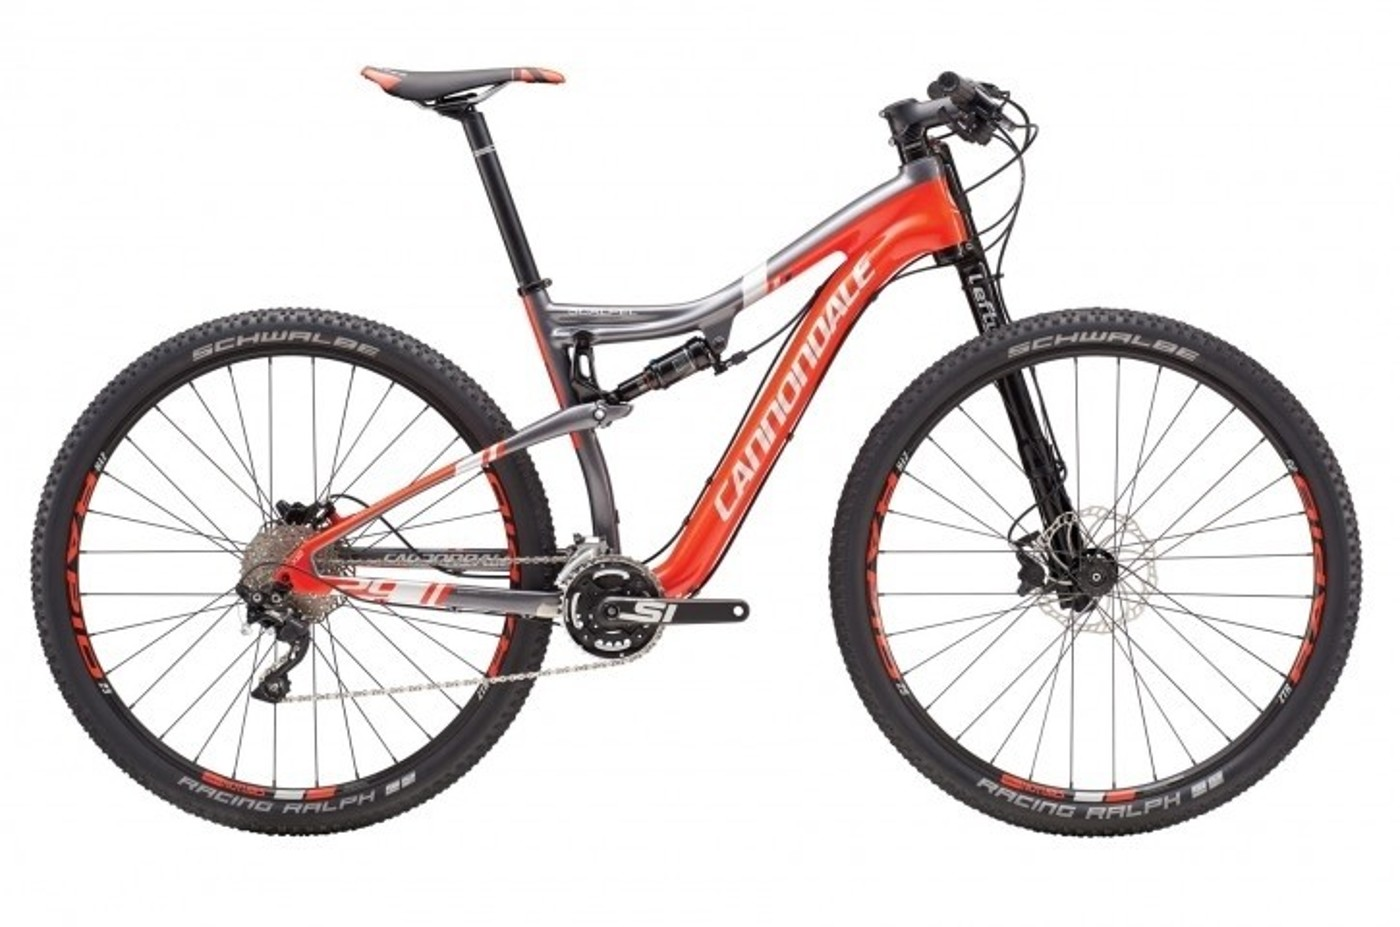 Cannondale Scalpel 29 Carbon 3 2016 Cross Country Mountainbike